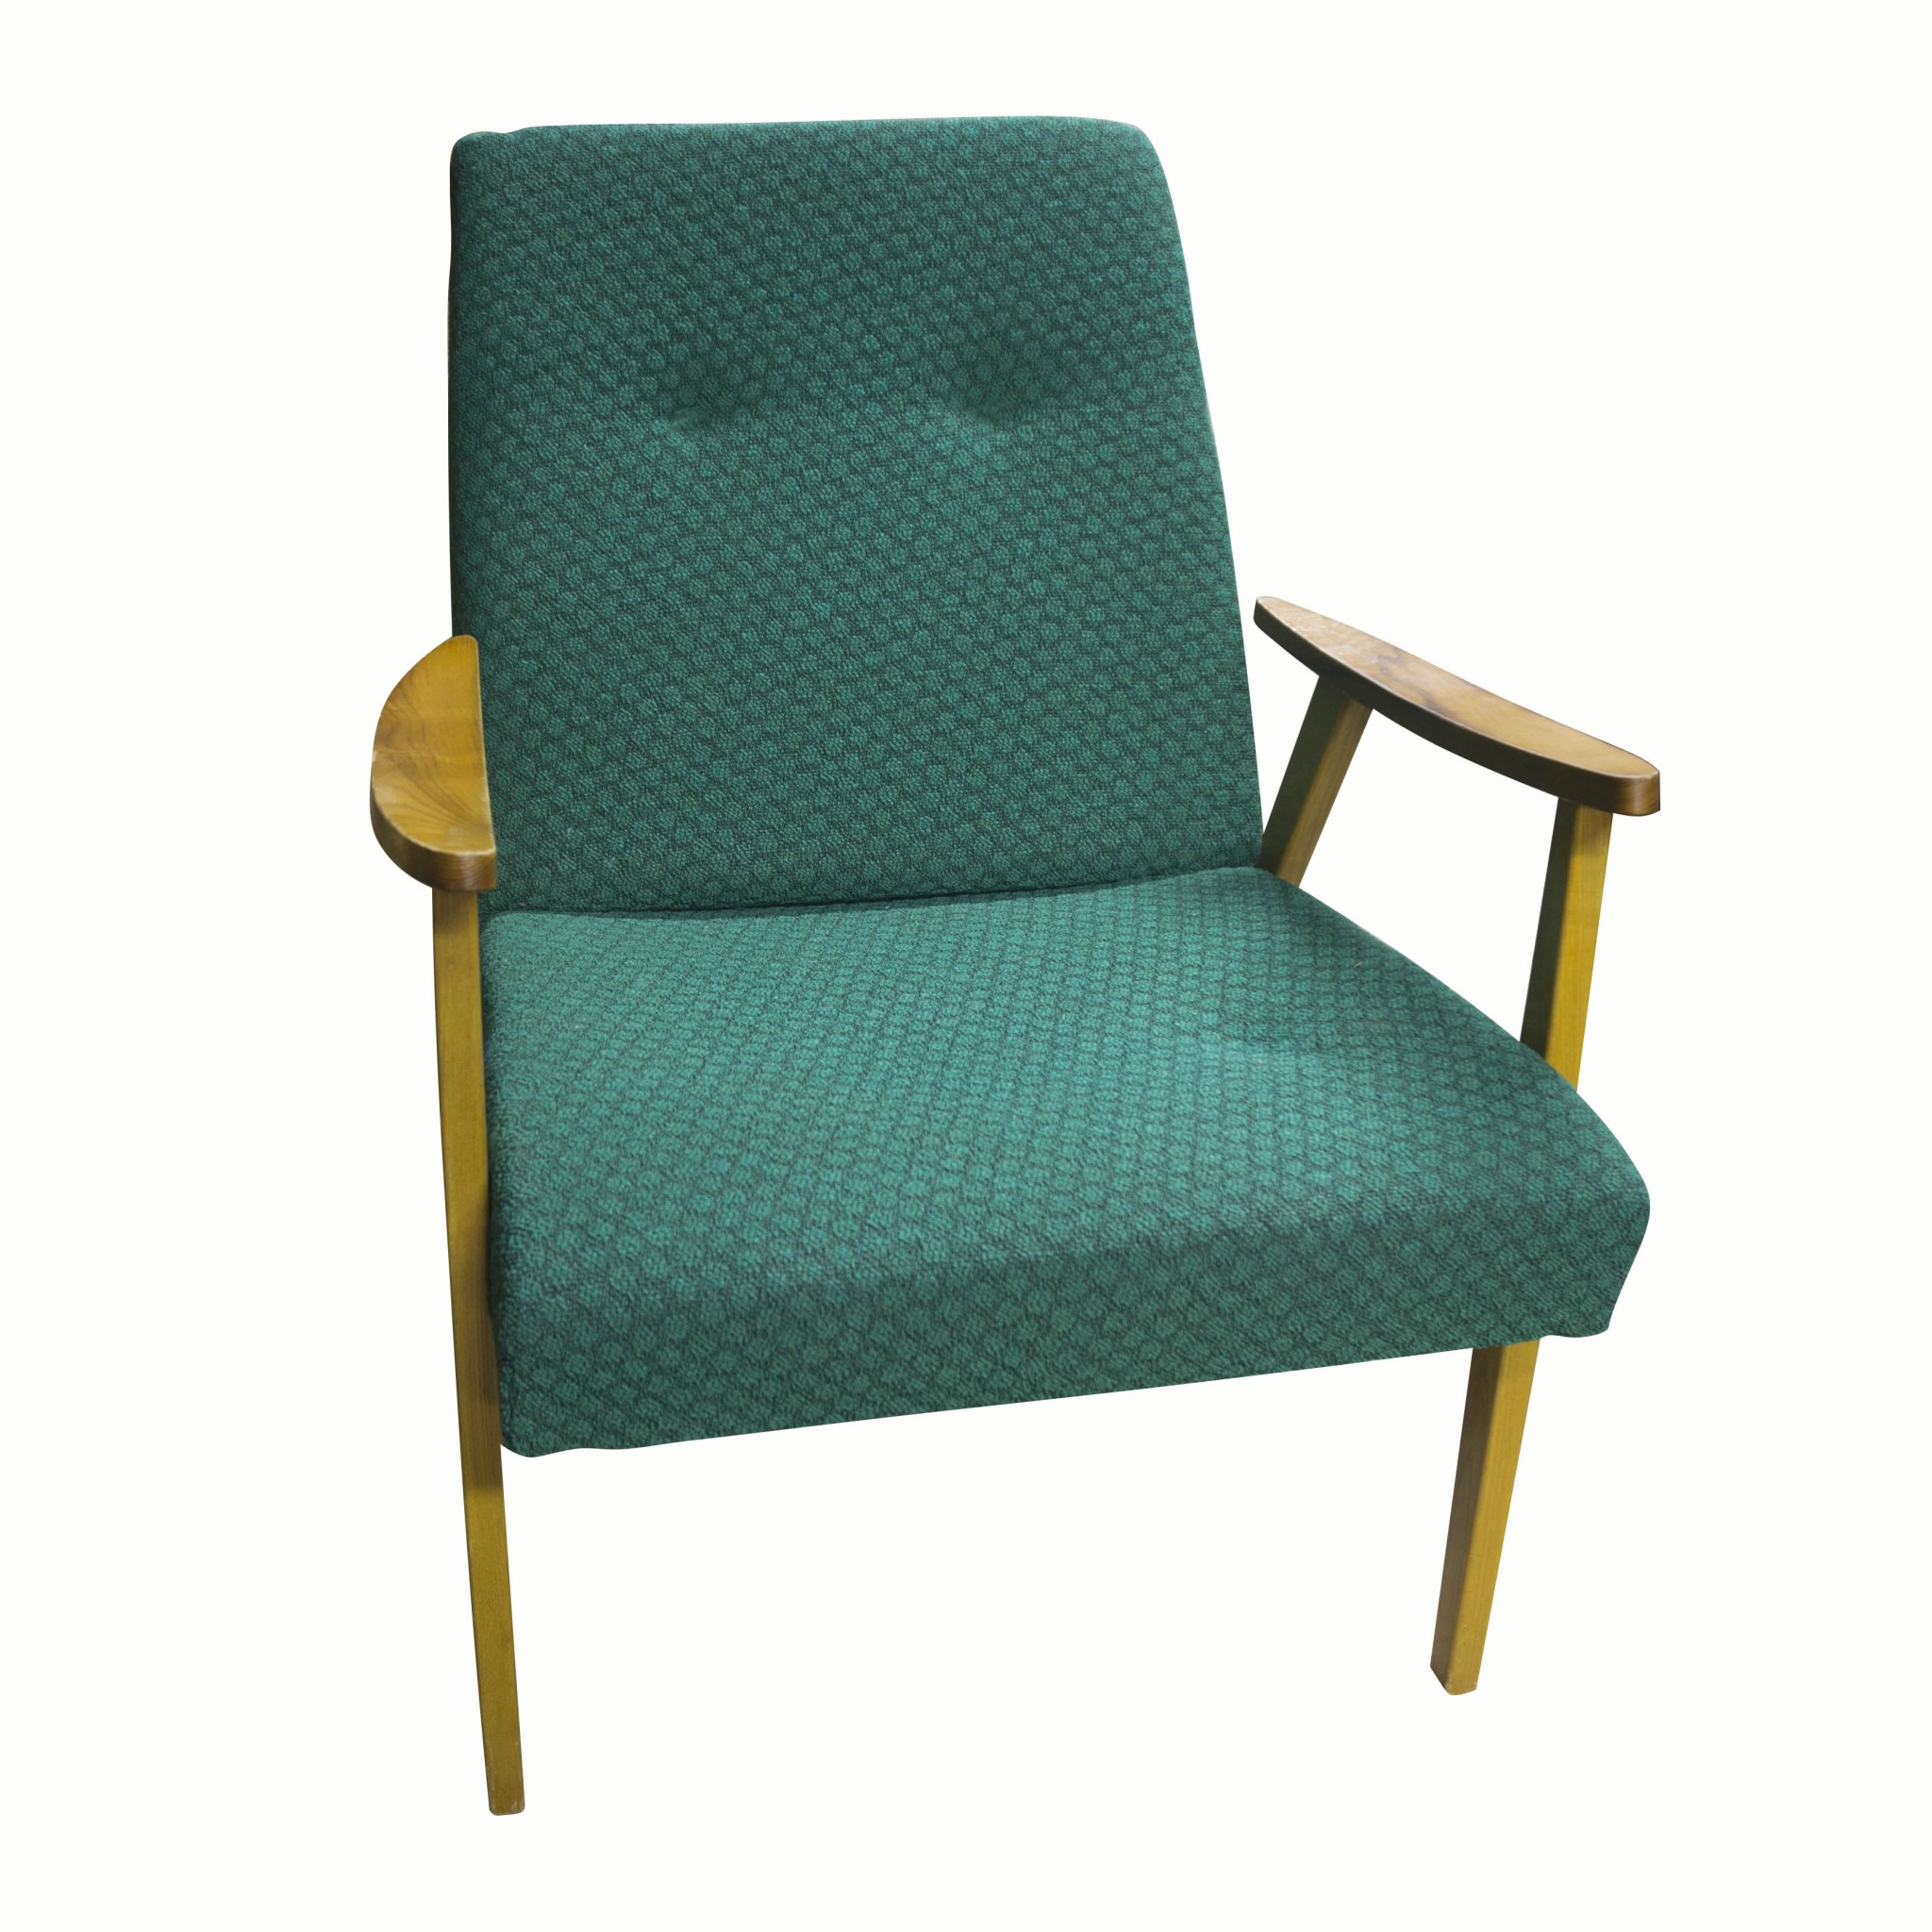 A pair of Danish style armchairs, Mid century | Your20th ...